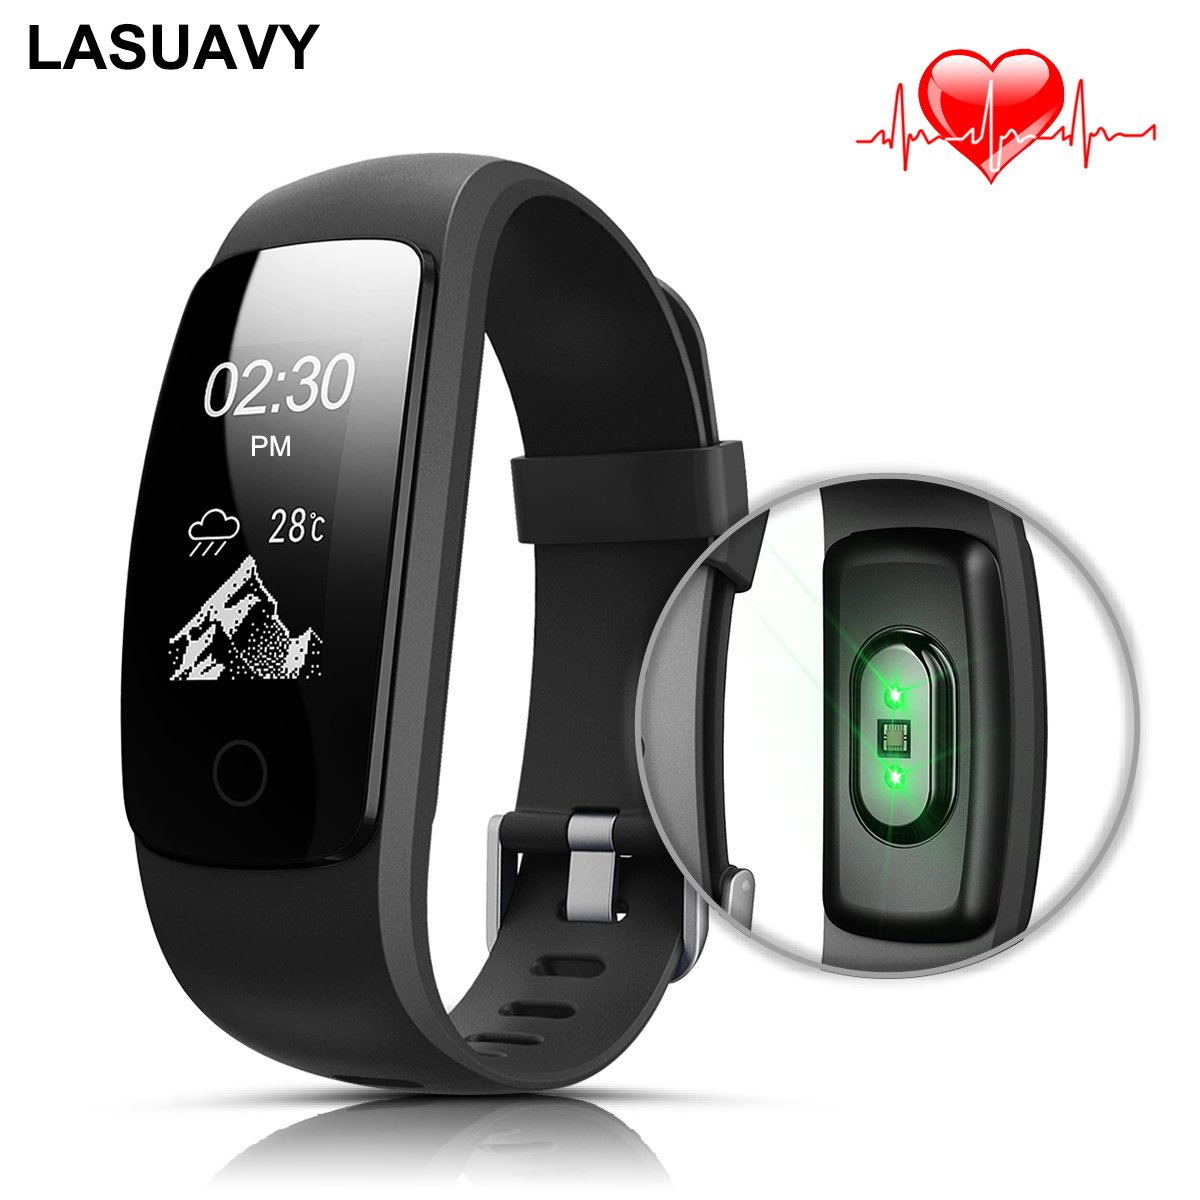 lasuavy fitness tracker mit herzfrequenz armbanduhr. Black Bedroom Furniture Sets. Home Design Ideas